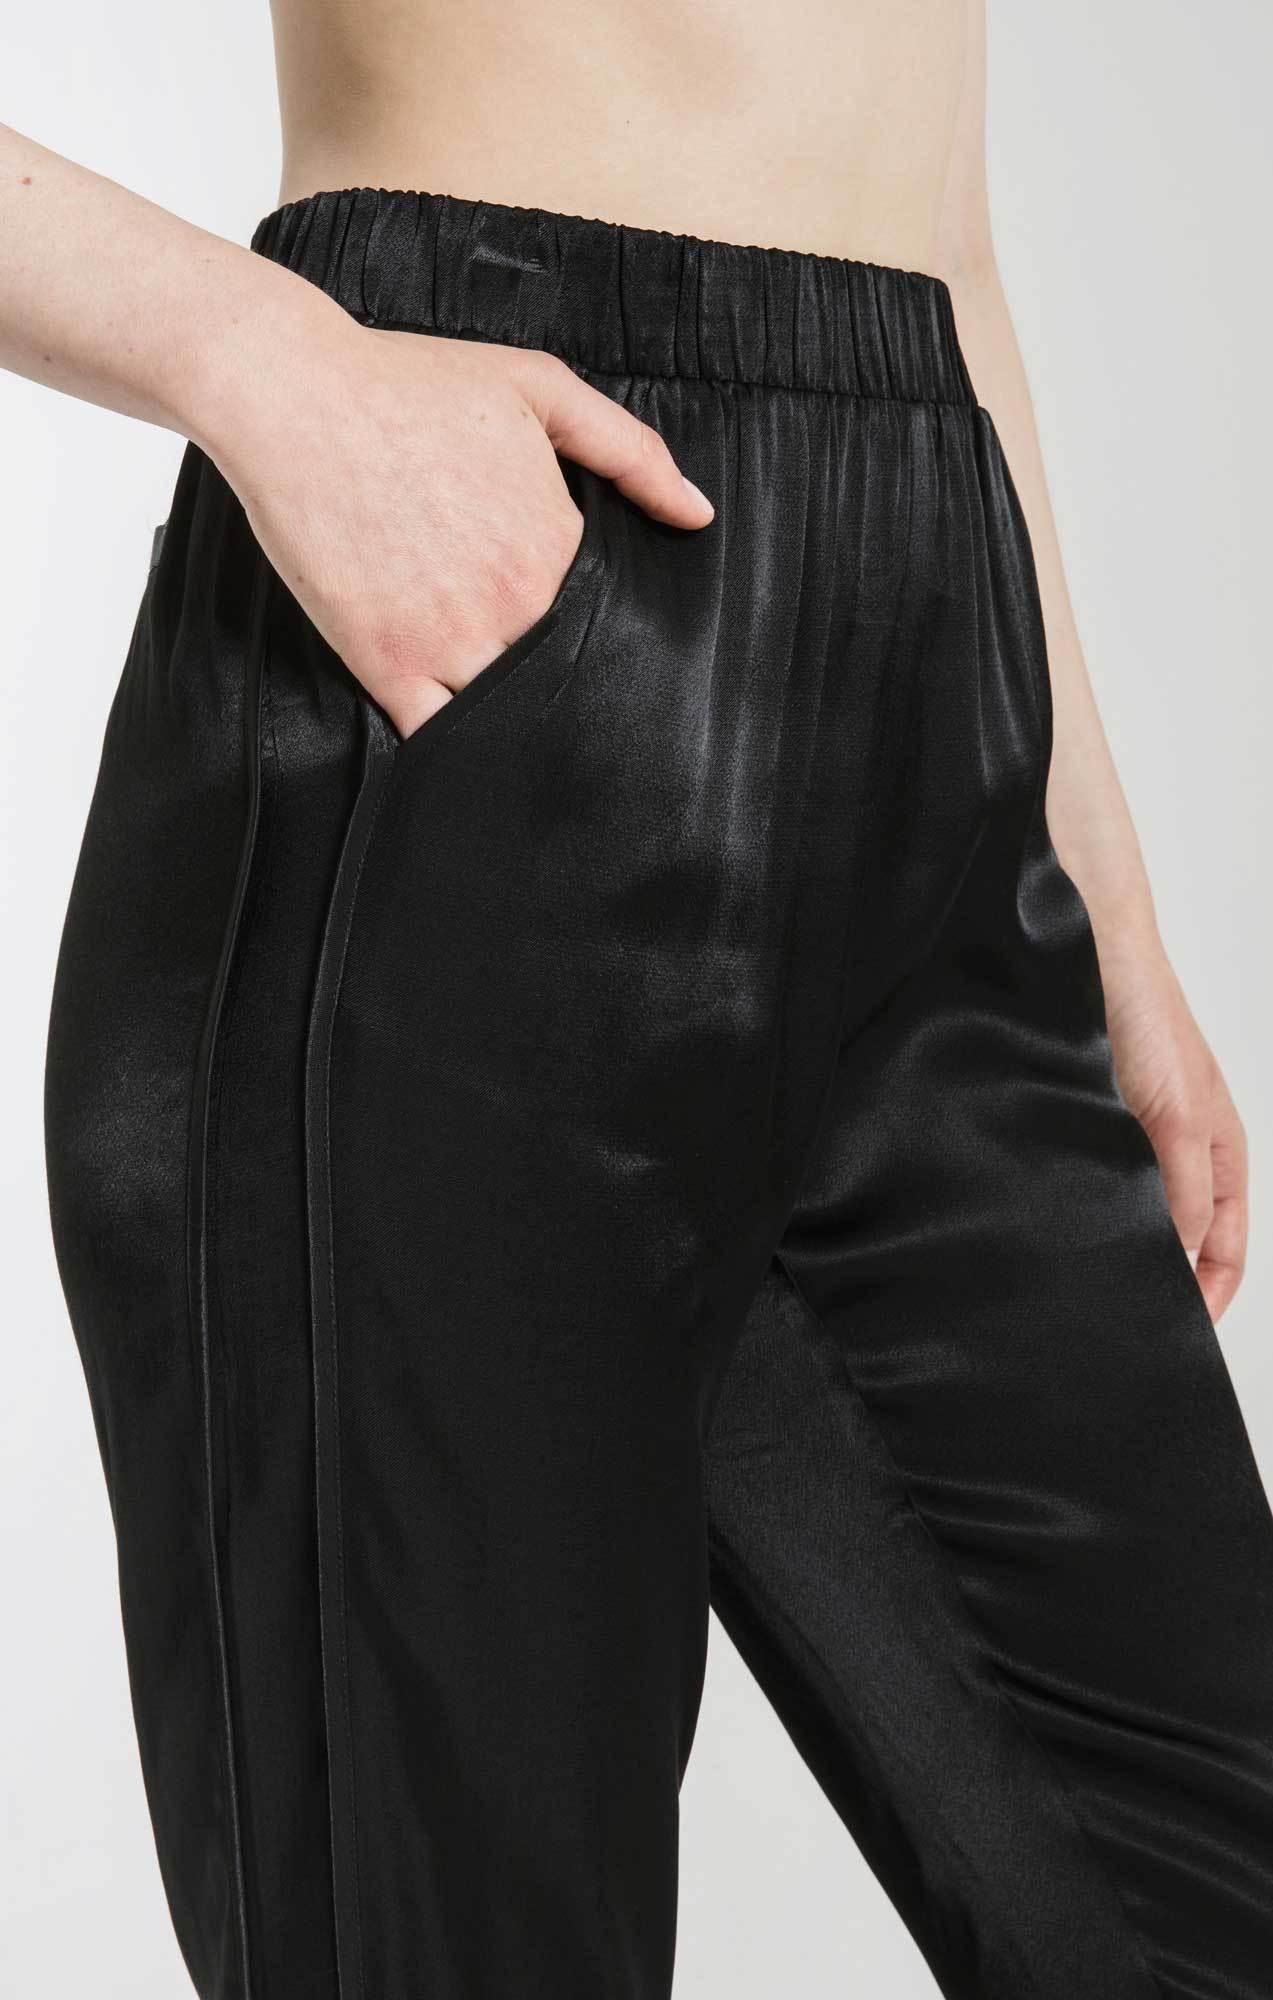 Pants Kiara Satin Slip-On Pant By Rag Poets Black